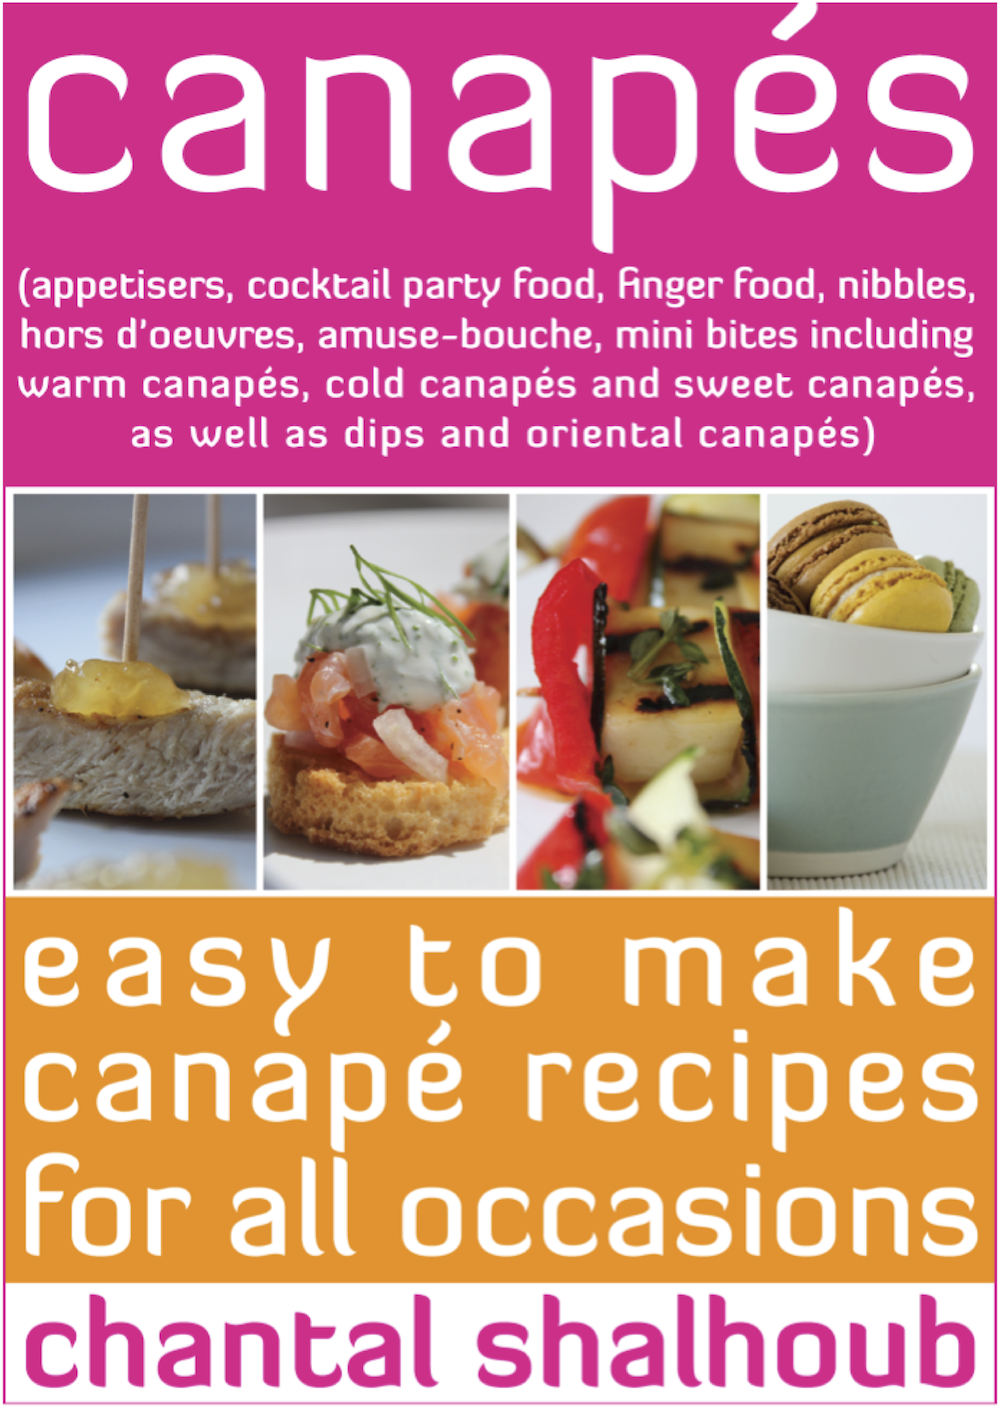 Canapés ebook by Chantal Shoulhoub